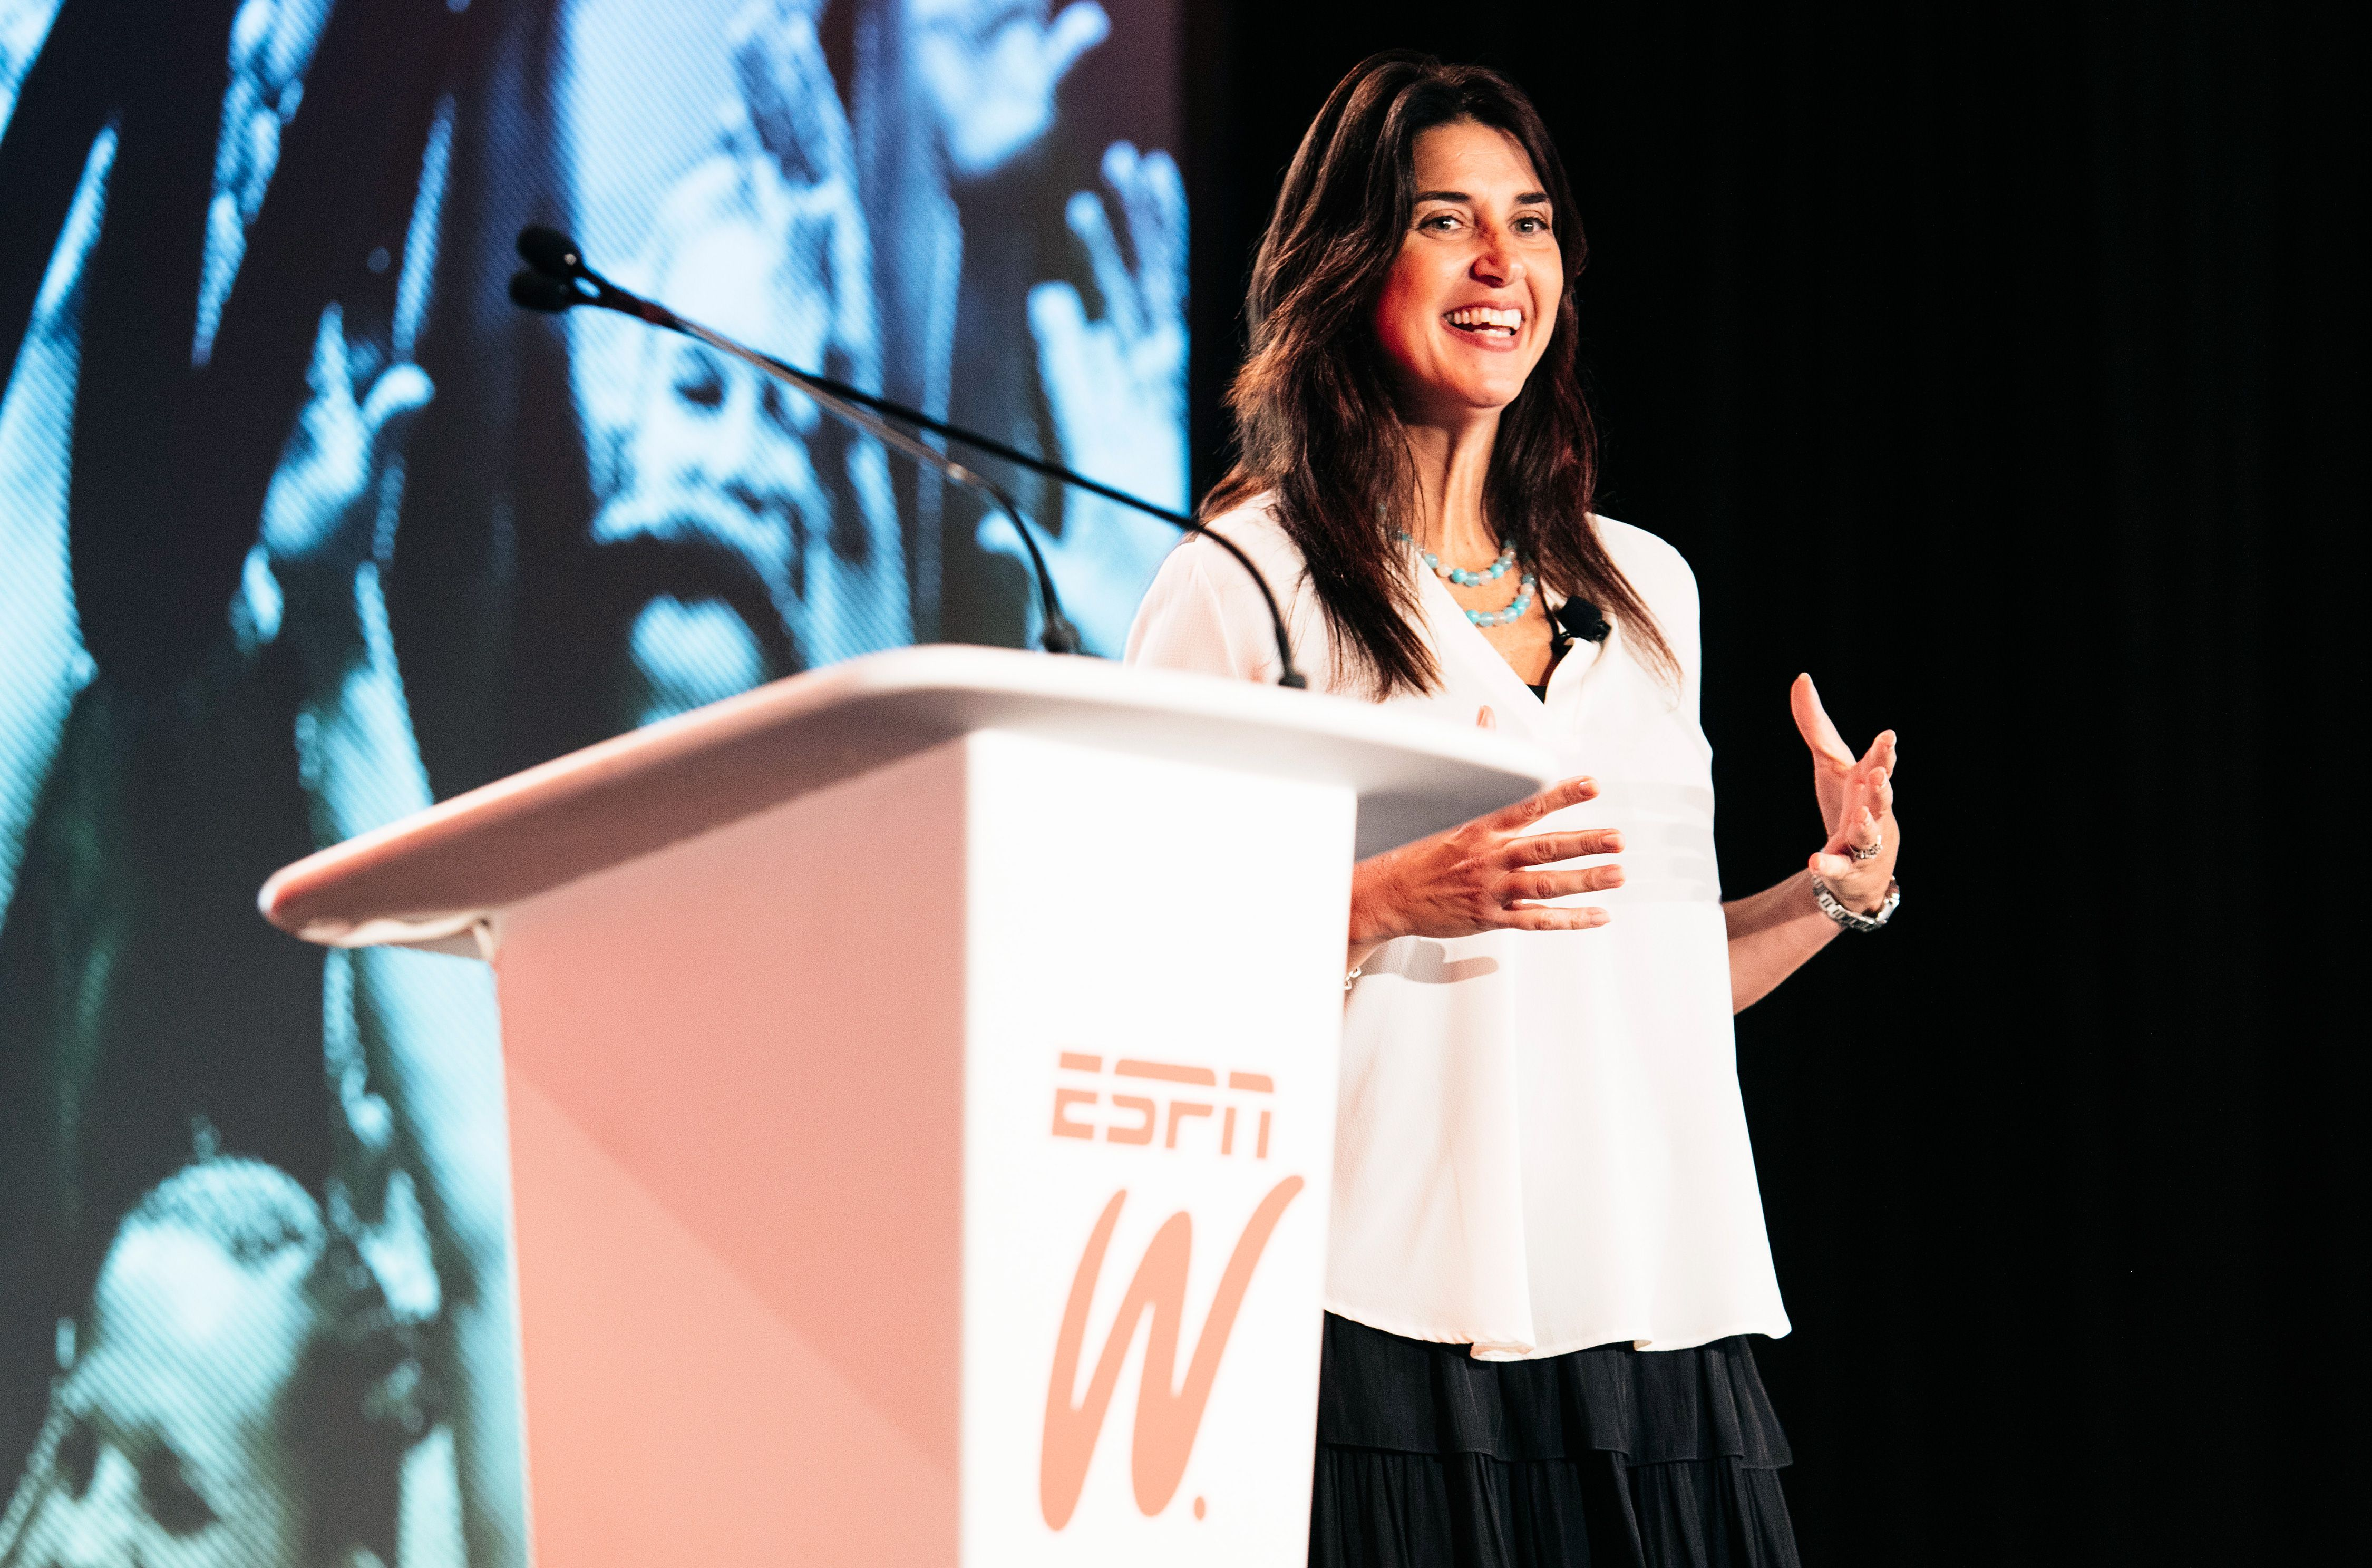 VP and founder of espnW, Laura Gentile